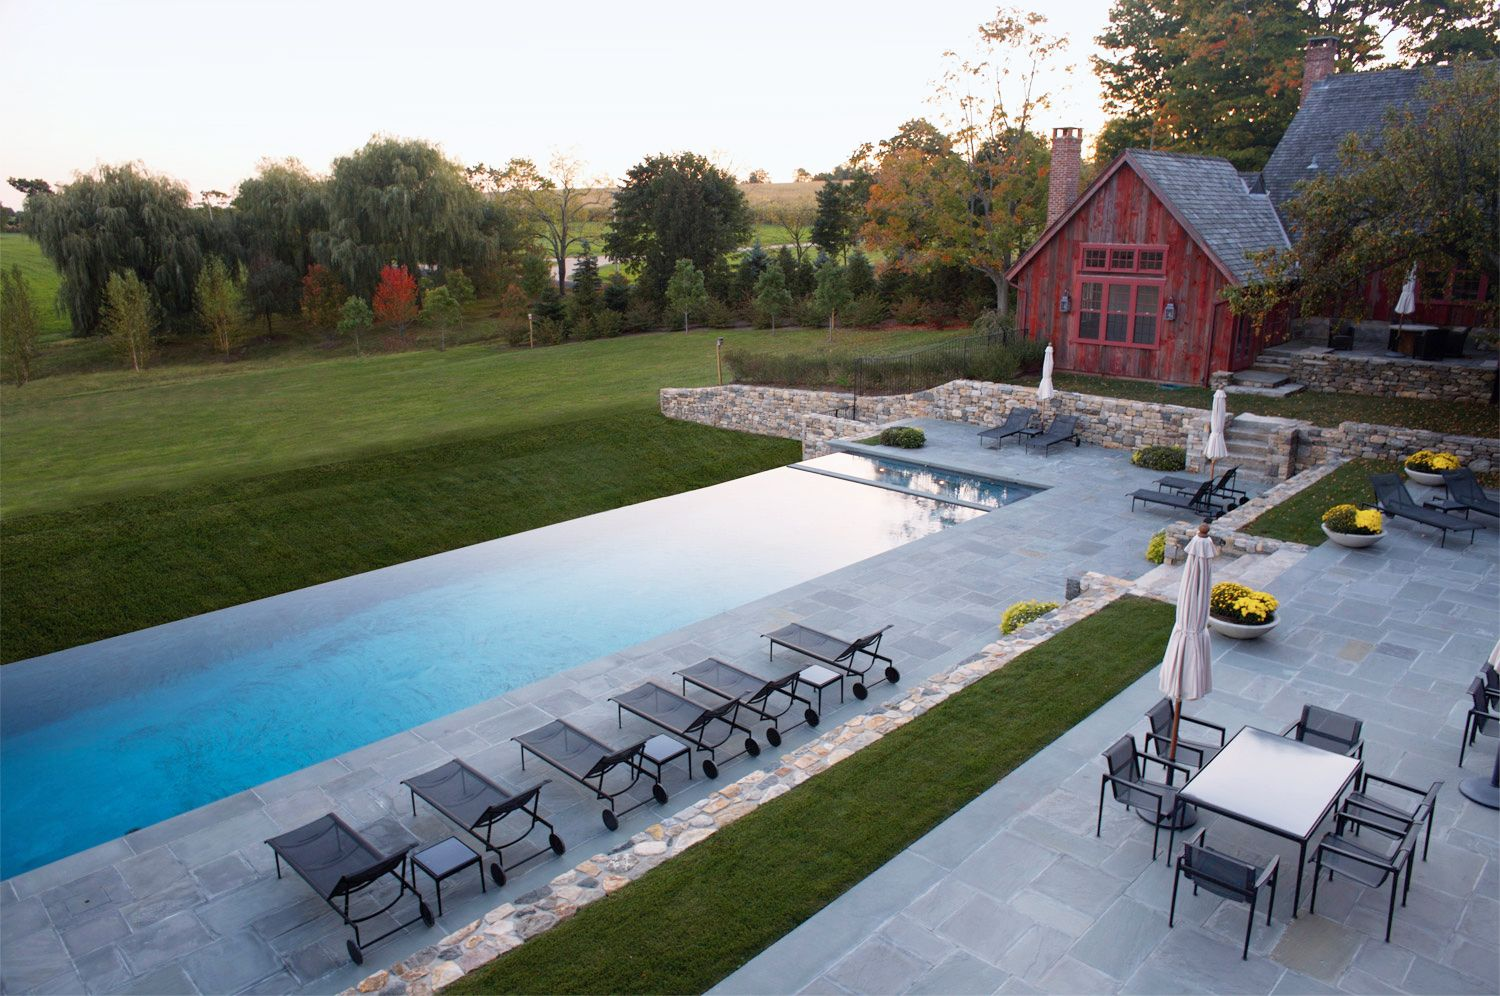 25 pool deck ideas for summer lounging